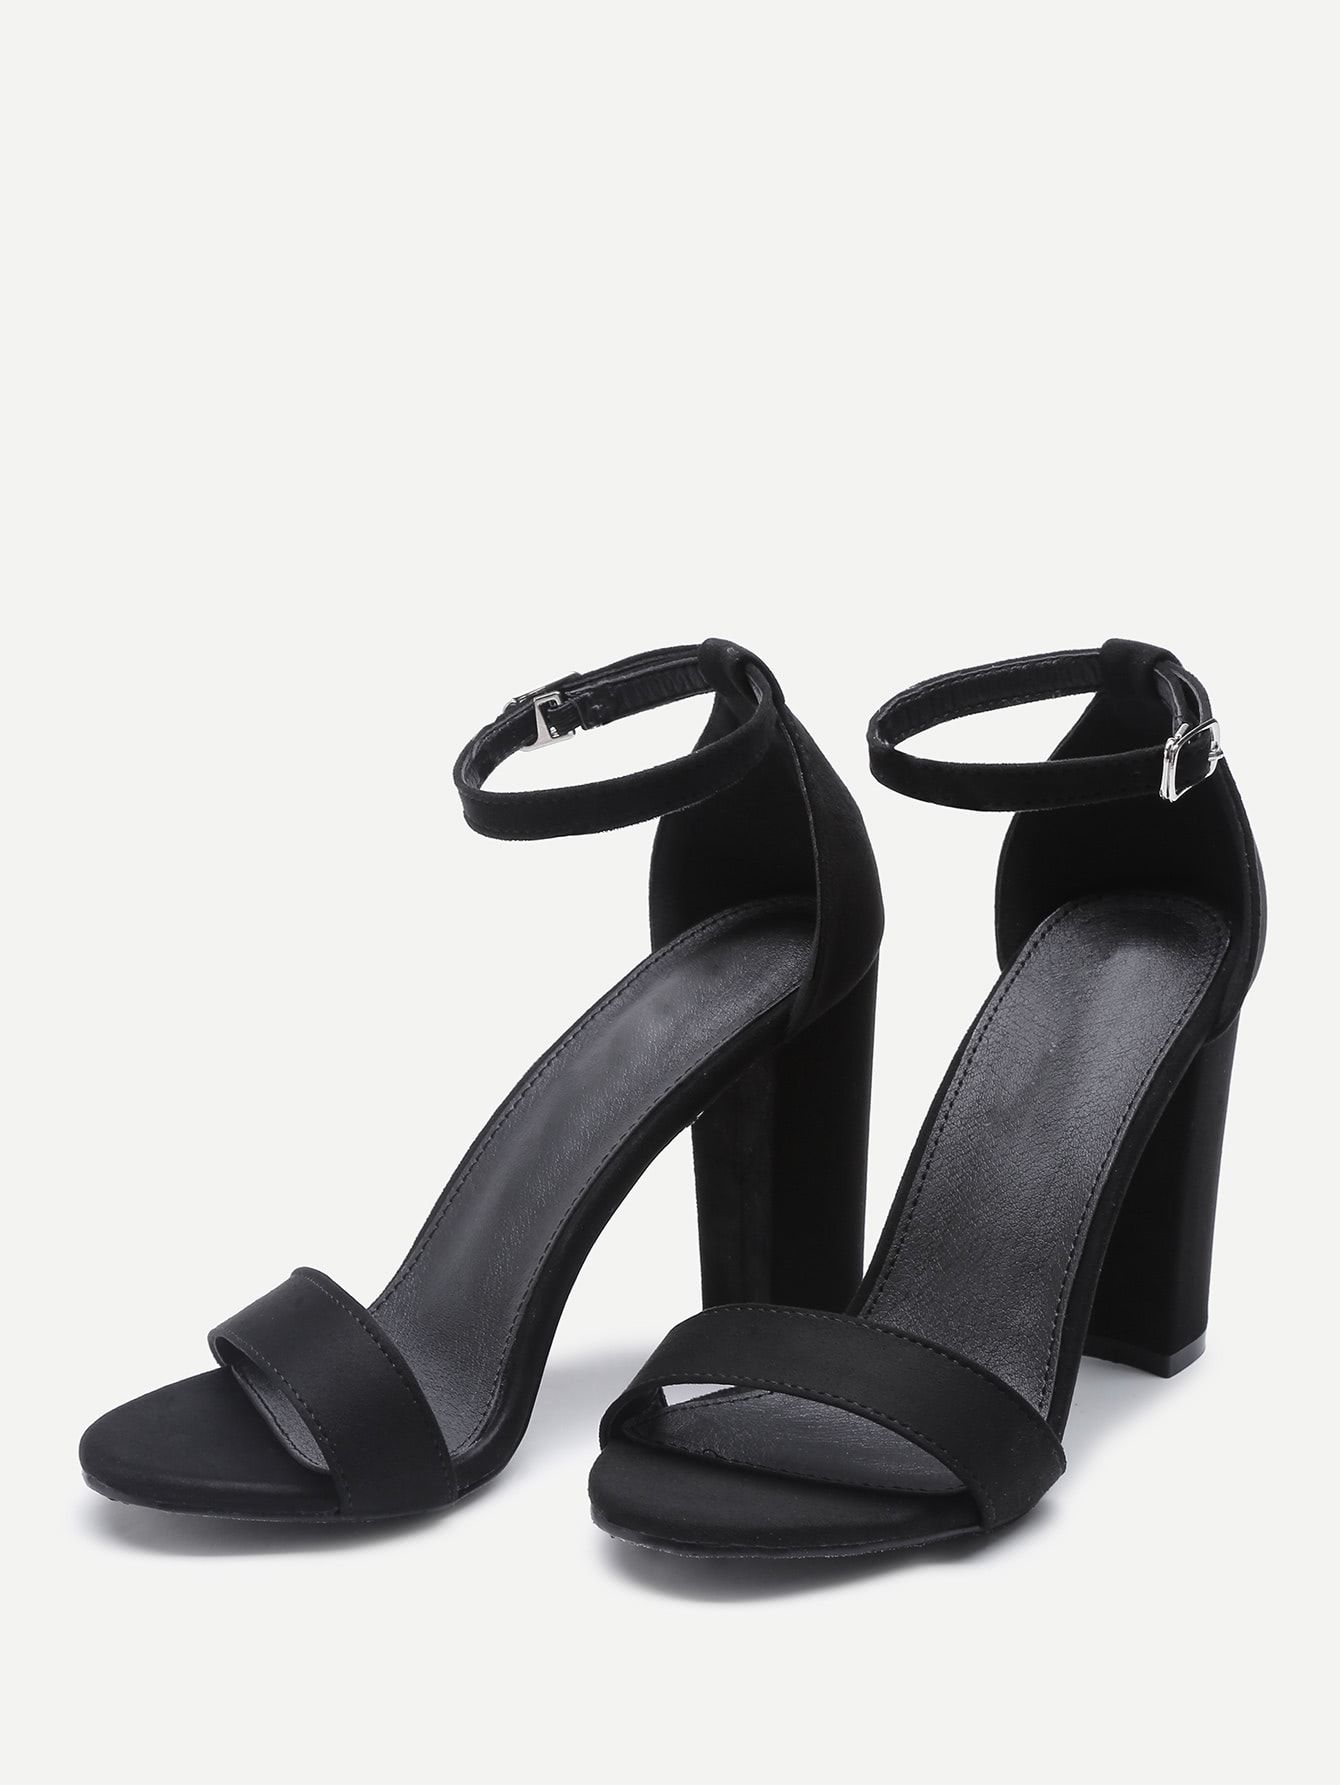 34f70ffd1e5c Elegant Open Toe Ankle strap Black High Heel Chunky Two Part Block Heeled  Sandals